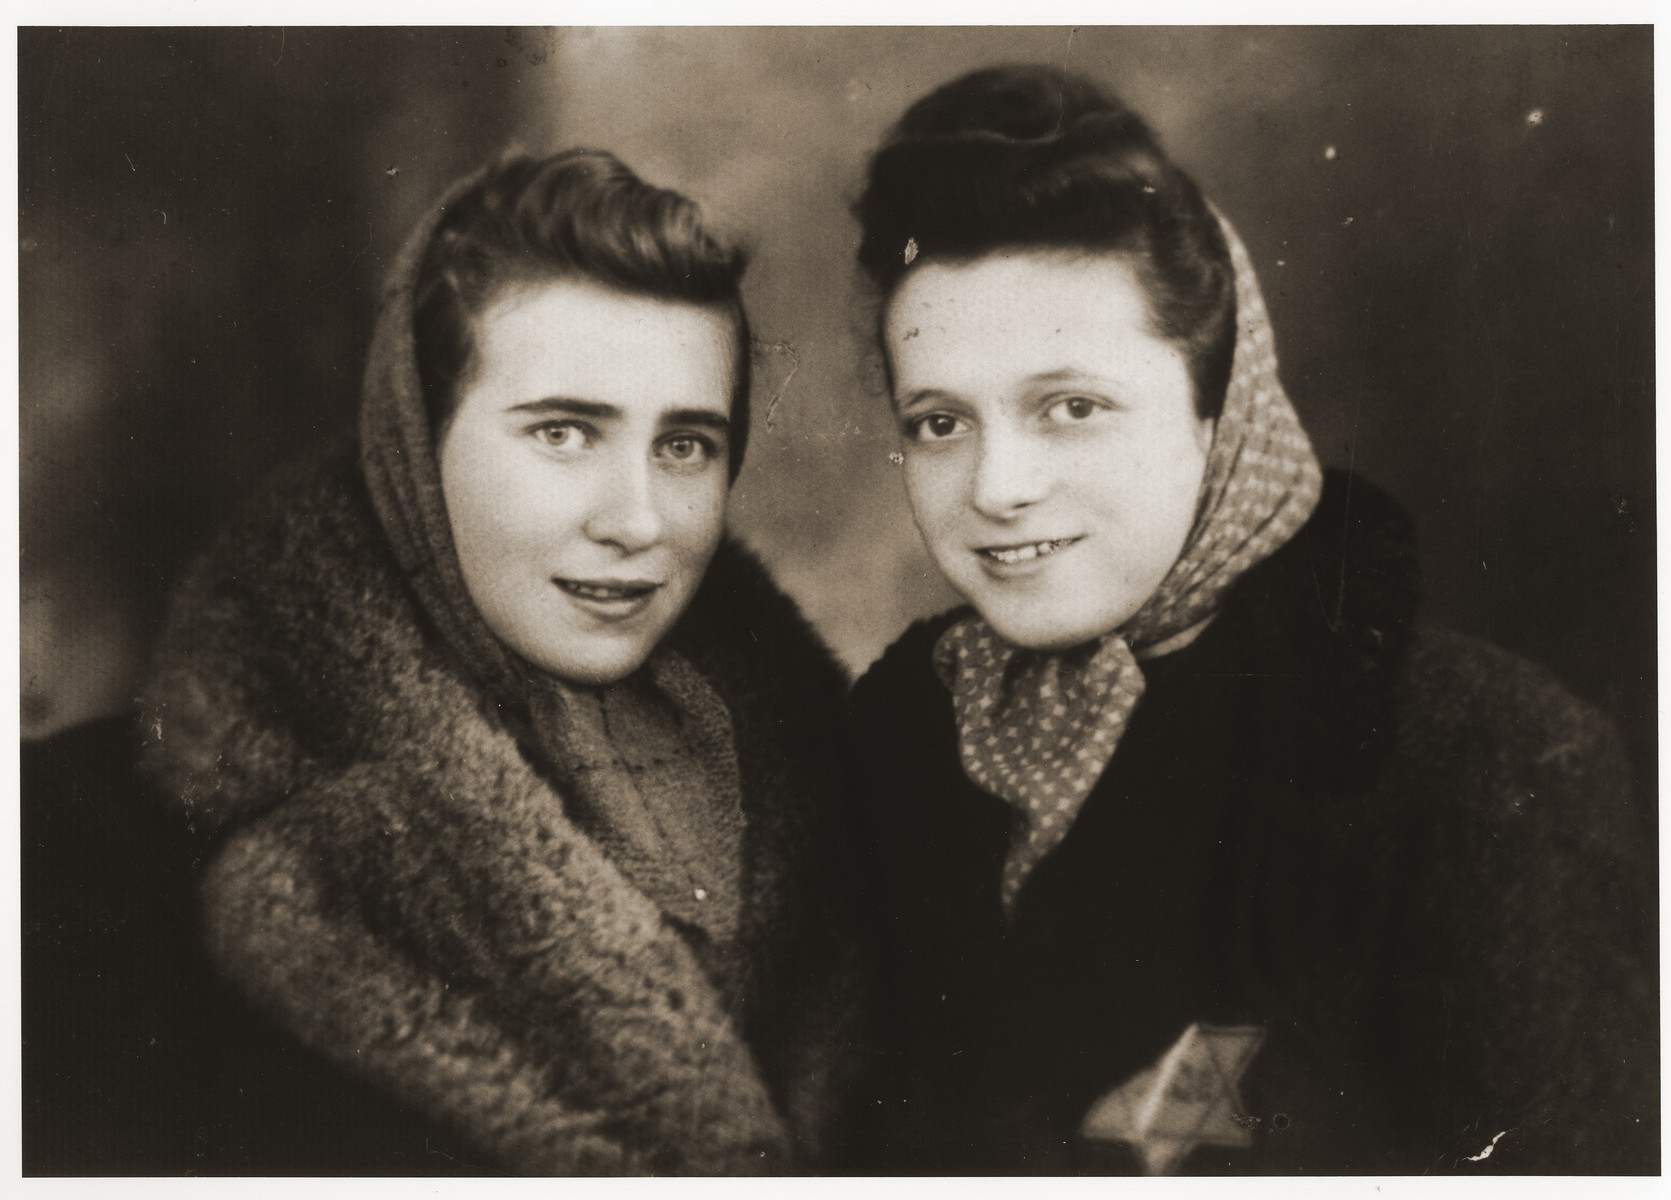 Portrait of two young women in the Dabrowa ghetto.  Pictured on the left is Ala Zylbersztajn.